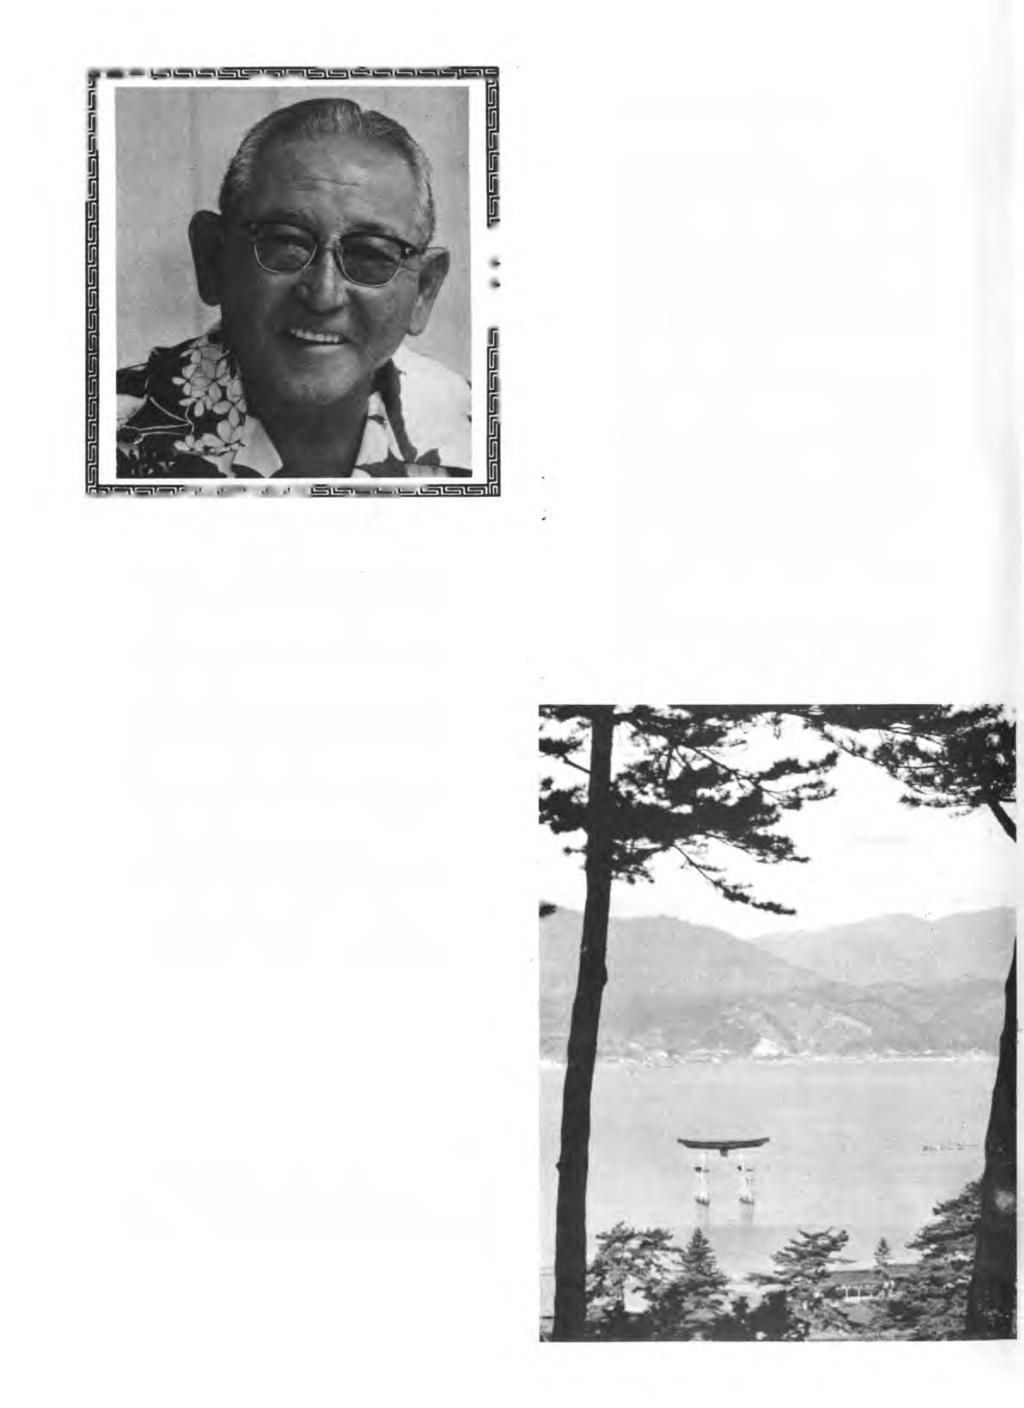 DANIEL E. TAKEHARA Continued from page 91 DANIEL MASAMI YONEMORI M r. Daniel Y o nem ori was born on M ay 2 8, 1 9 1 2 in K ahuku, Oahu.